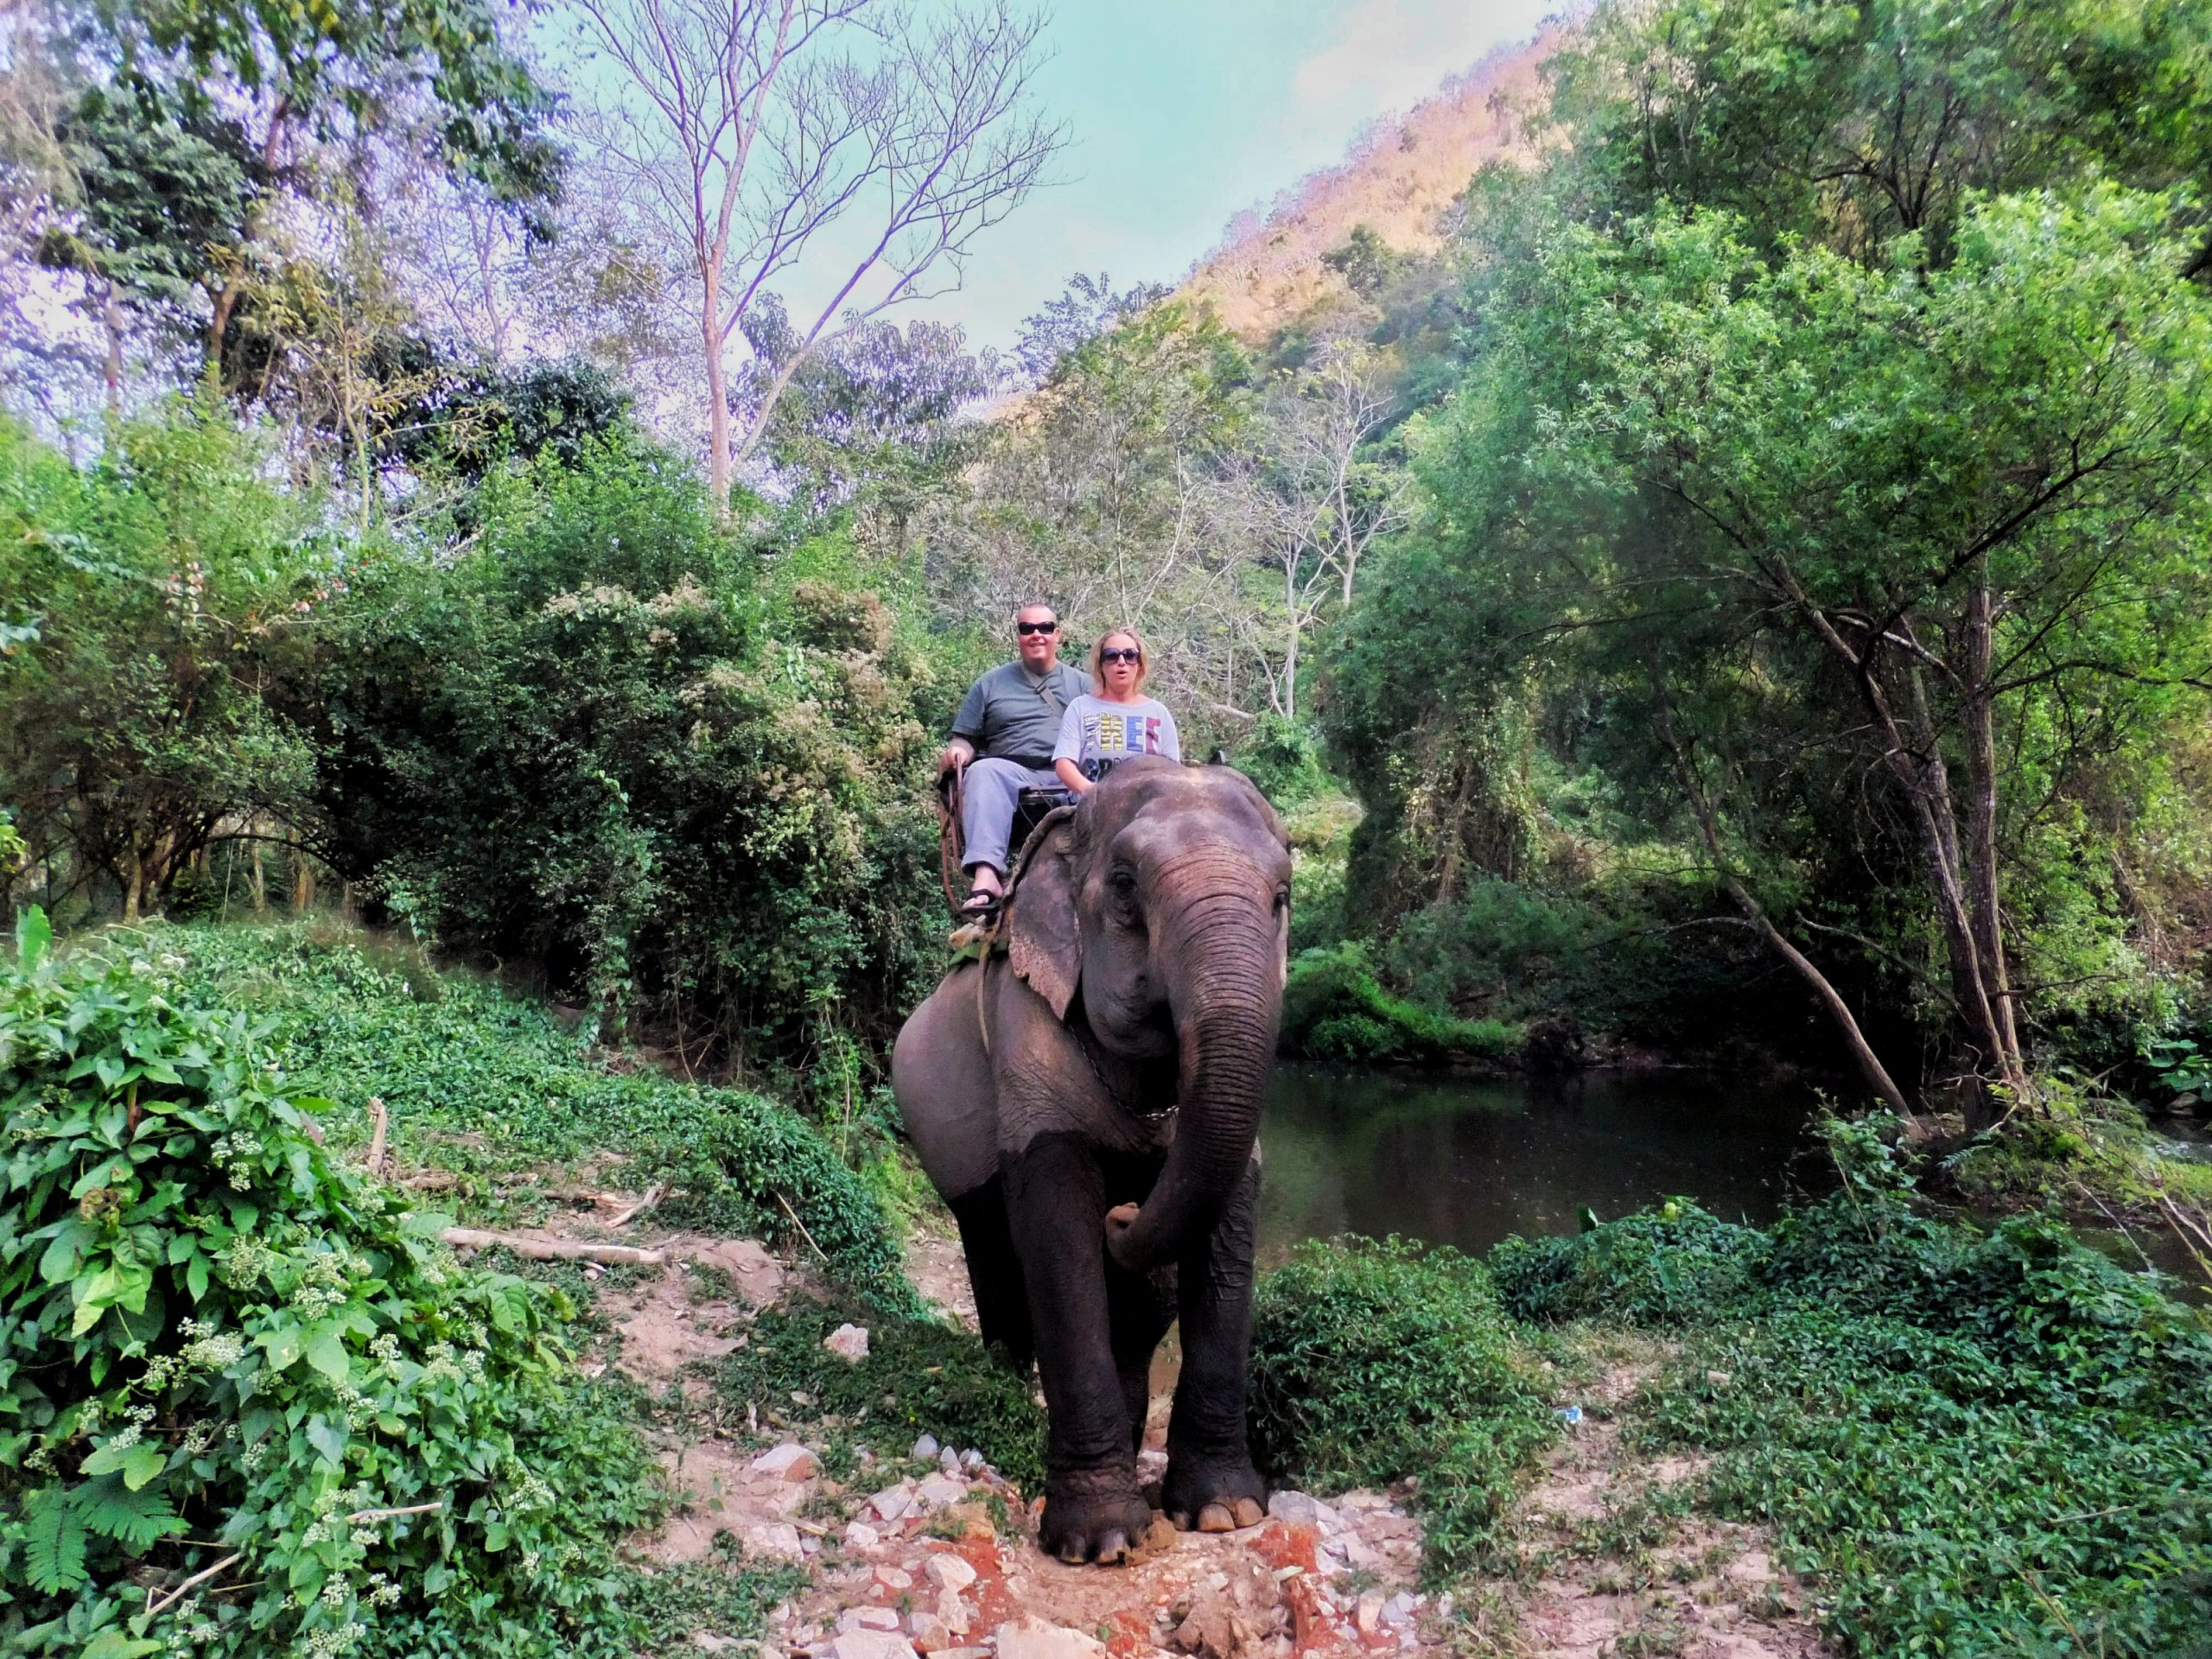 Riding Elephants in Khao Yai